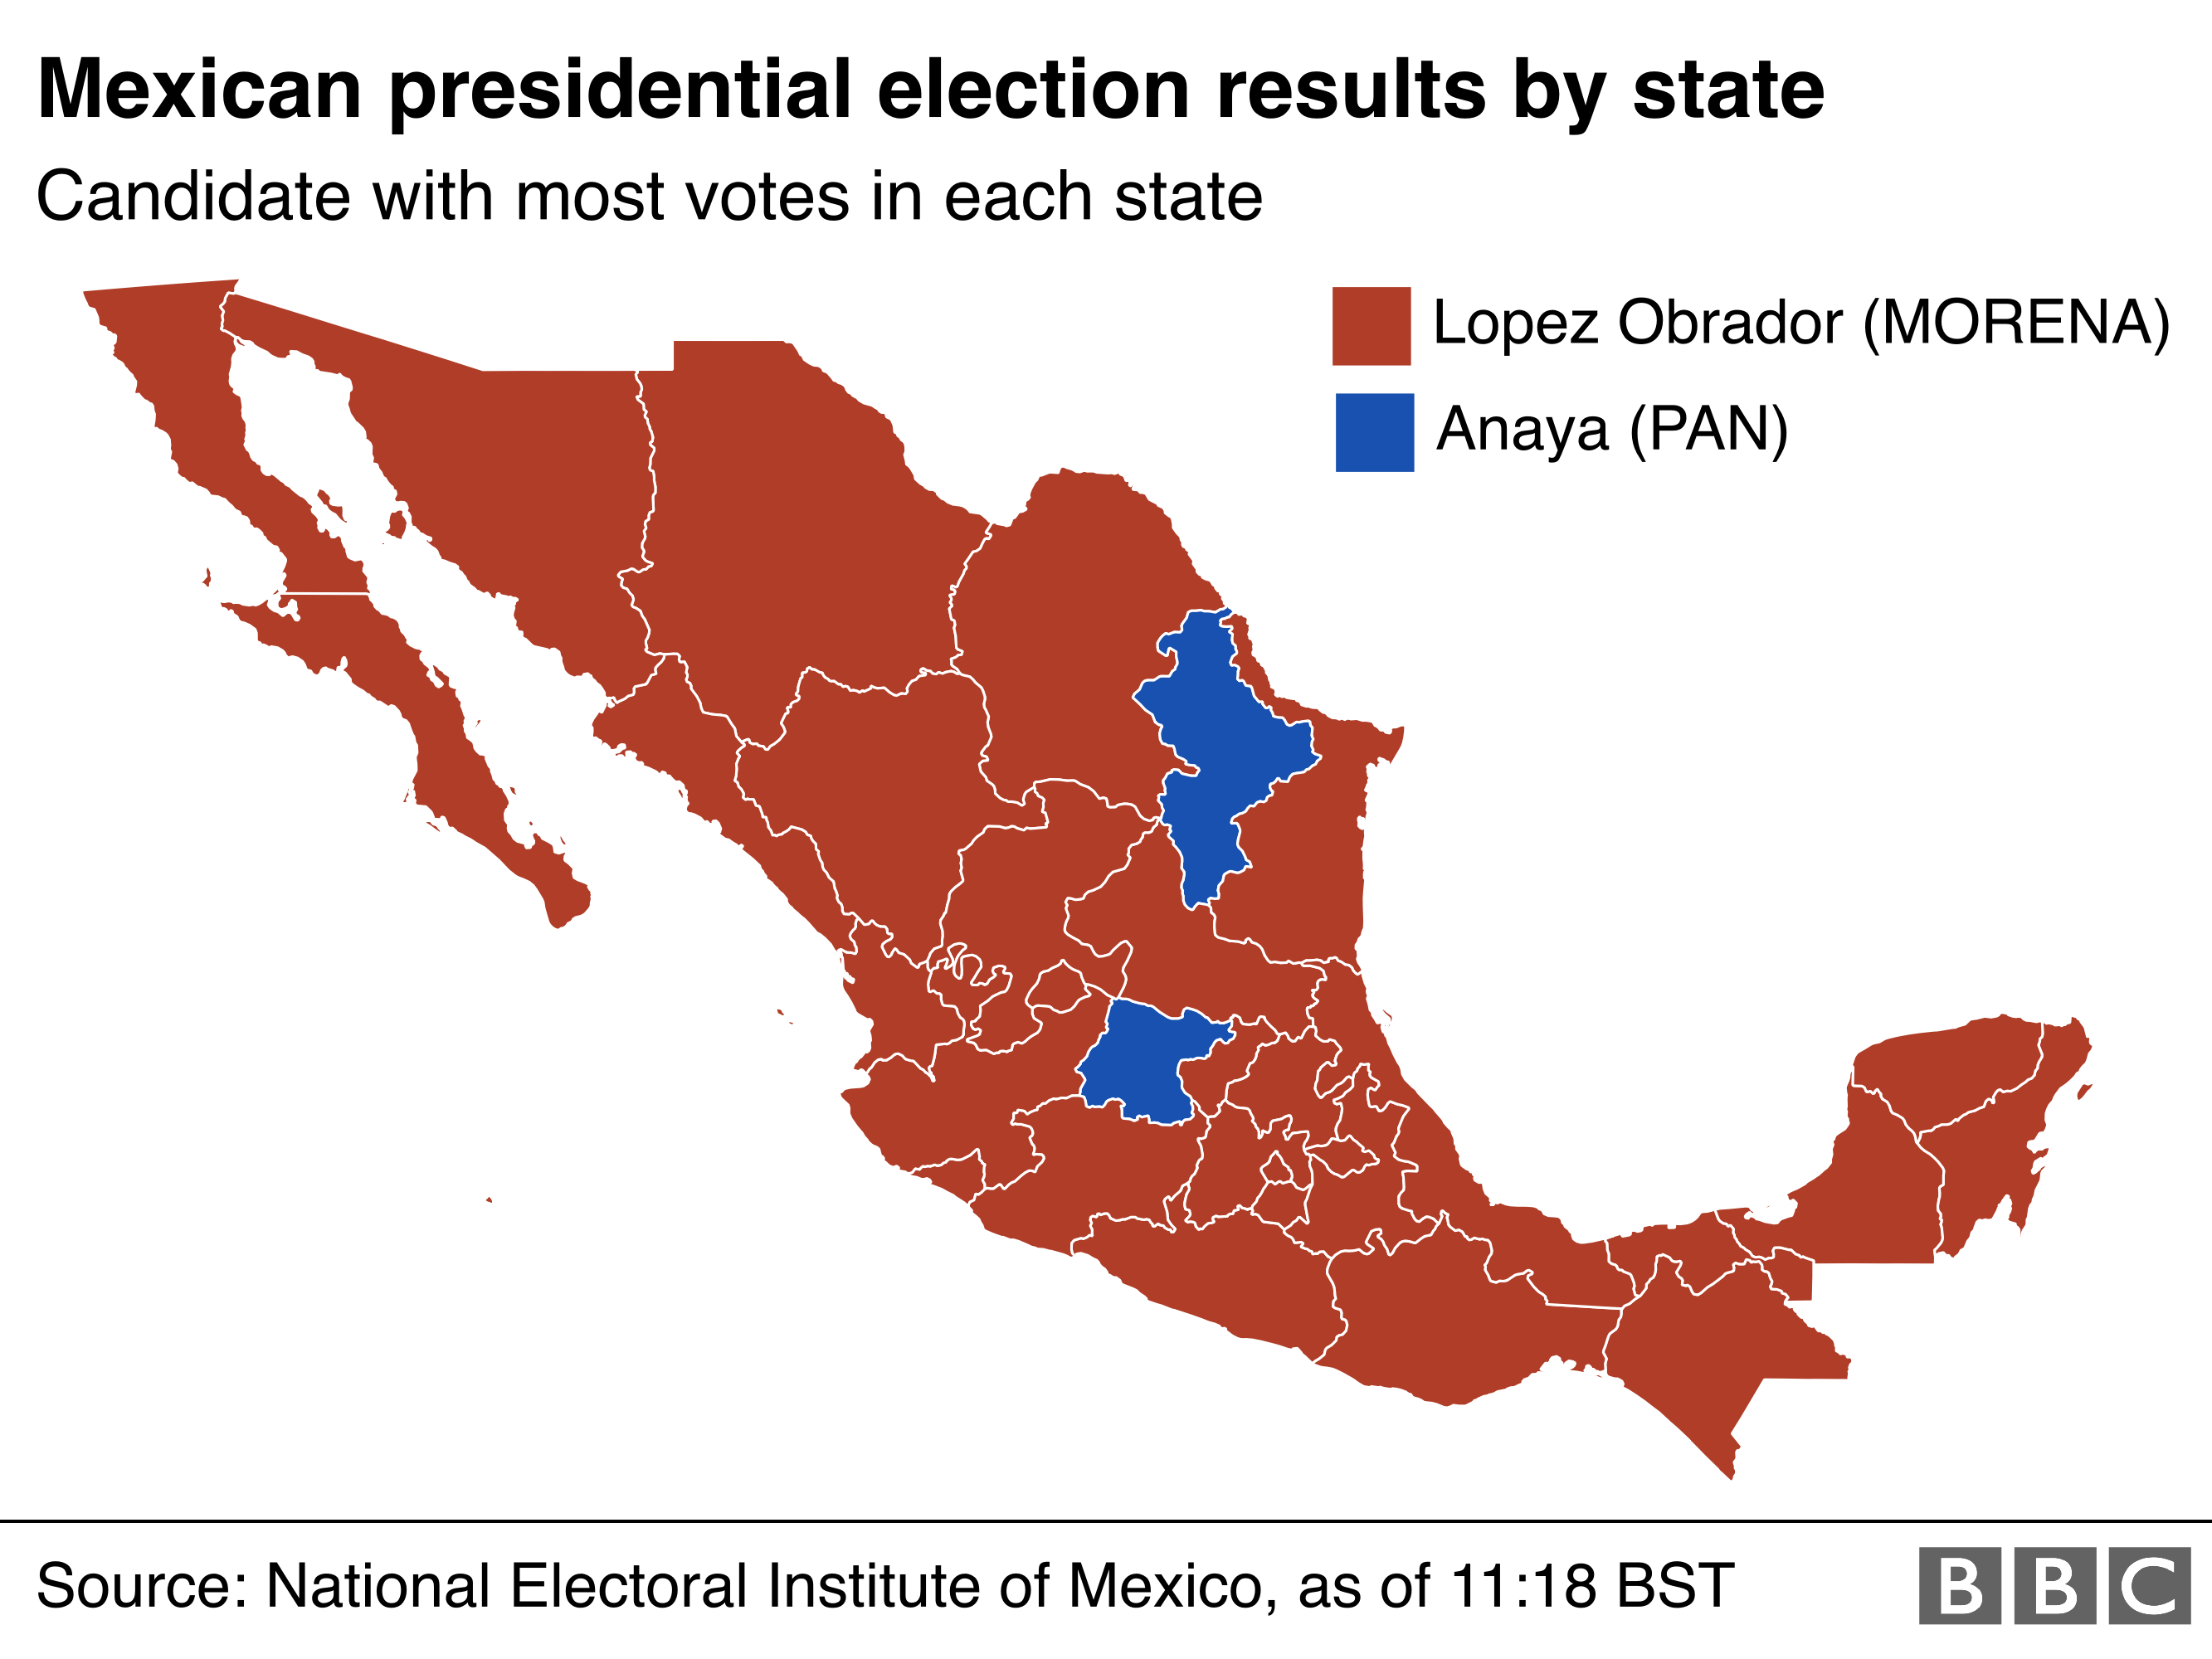 Obrador received the most votes in all but two states